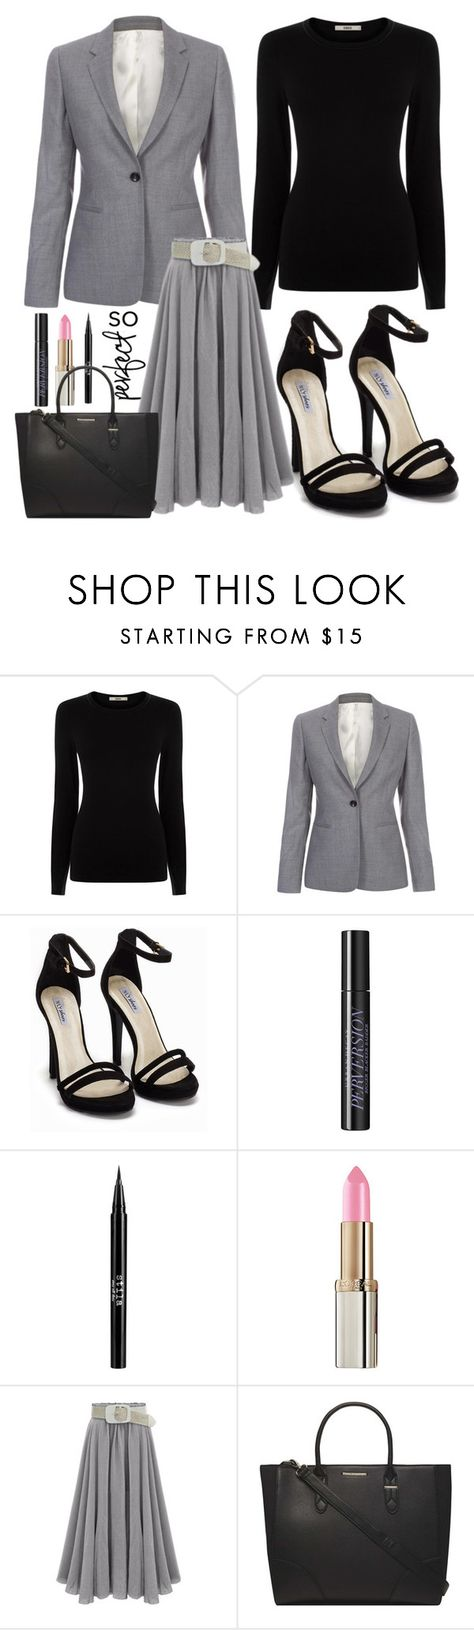 """The Working Lady"" by spellrox ❤ liked on Polyvore featuring Oasis, Paul Smith, Nly Shoes, Urban Decay, Stila, L'Oréal Paris, Dorothy Perkins, women's clothing, women's fashion and women"